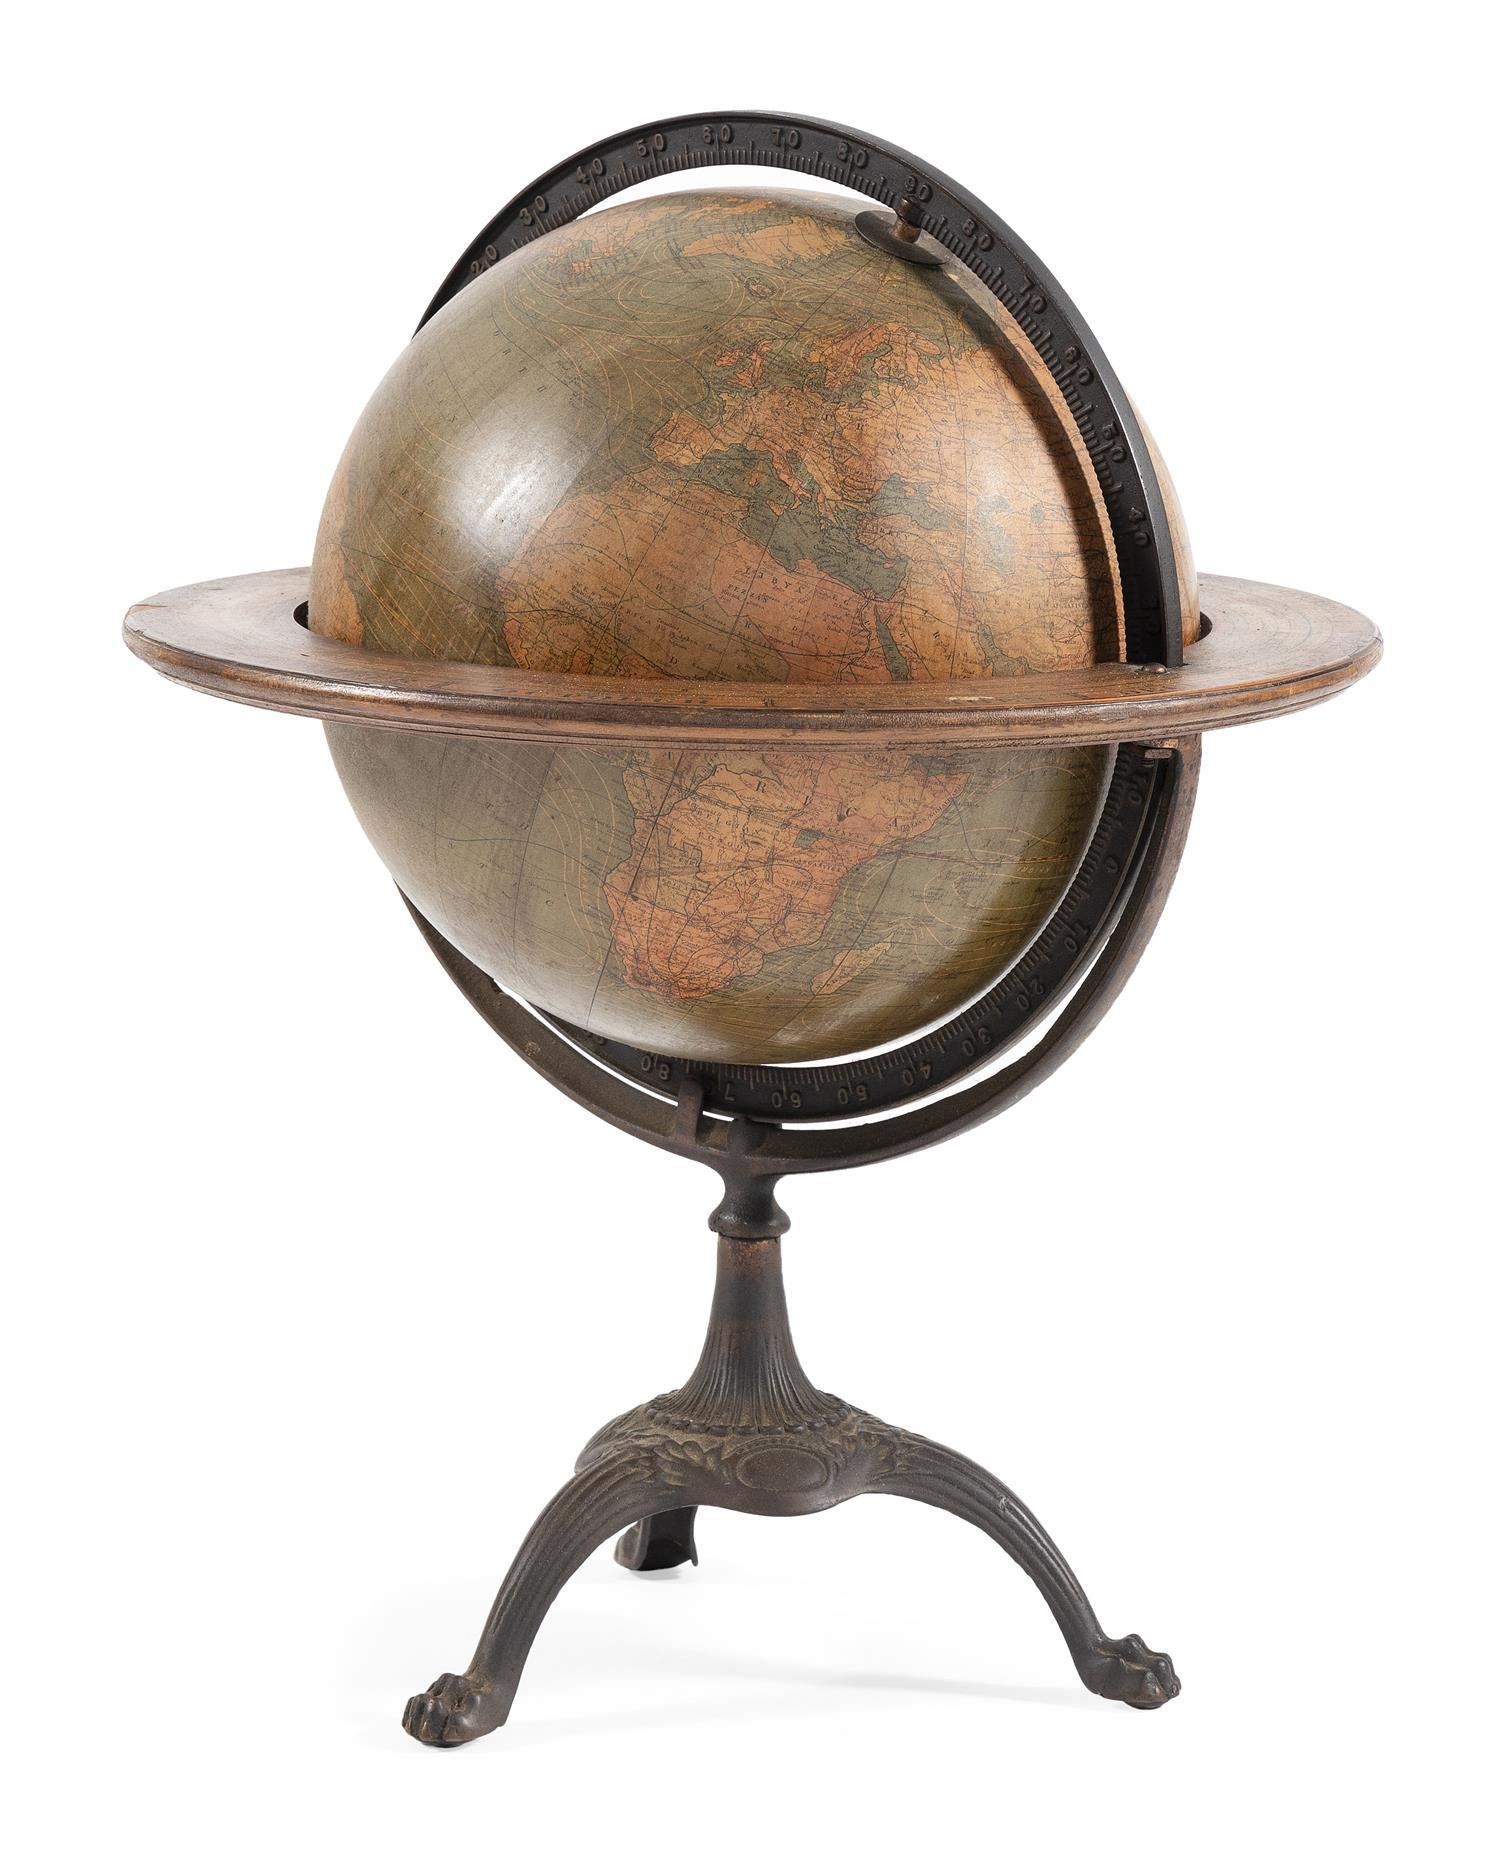 """TERRESTRIAL GLOBE Marked """"Weber Costello Co. Manufacturers Chicago Heights, Ill."""" Cast iron stand. Height 23.5"""". Length 17""""."""